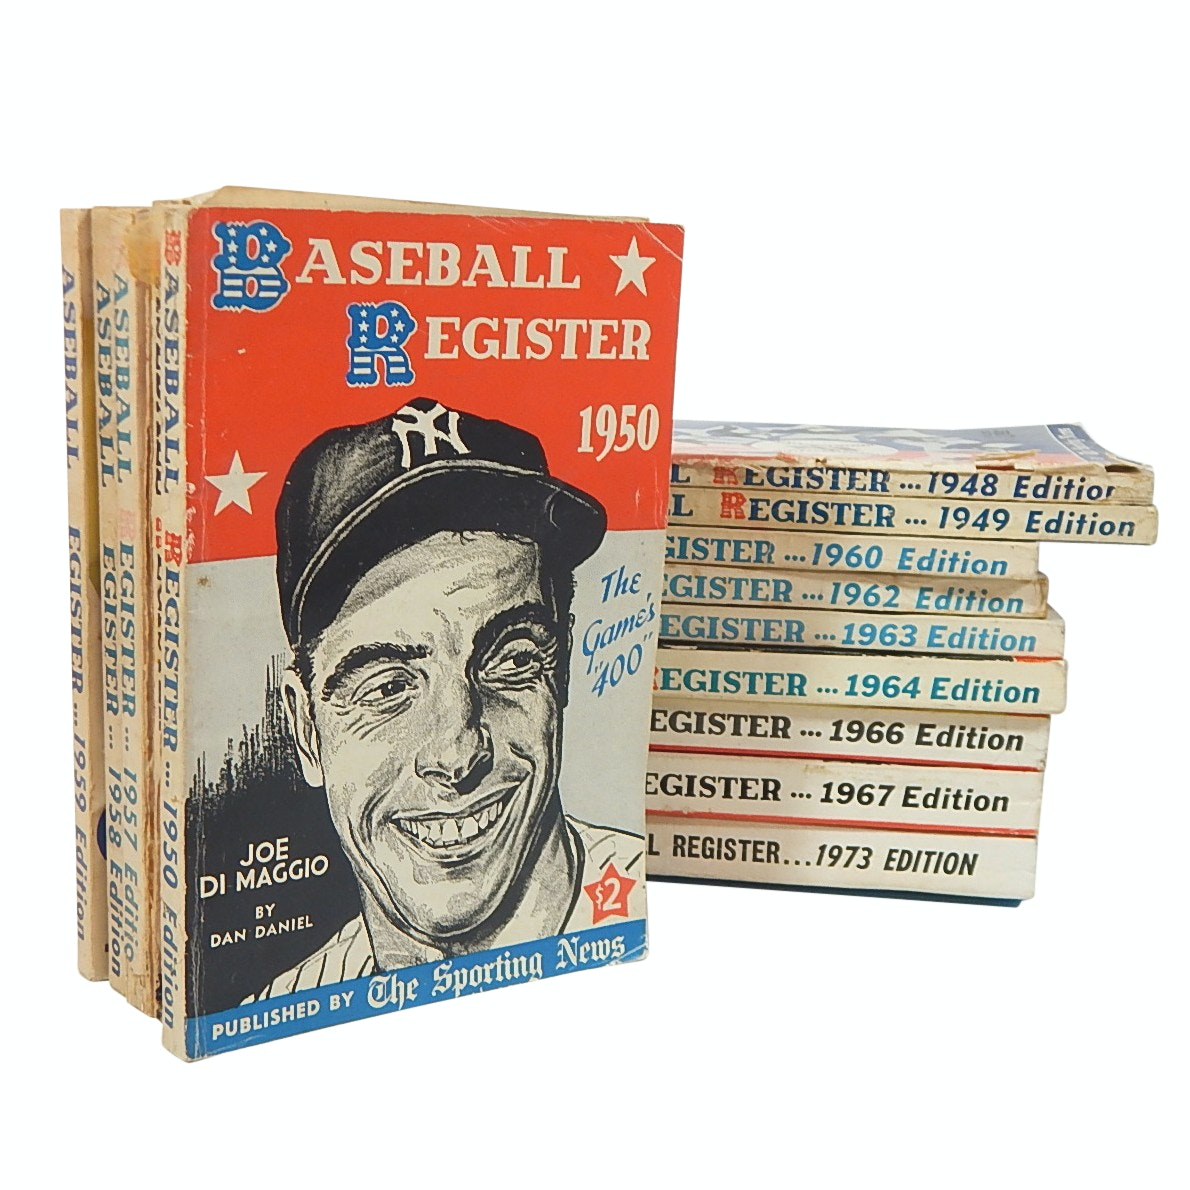 Vintage Baseball Register Books from 1948 with Various Years to 1973